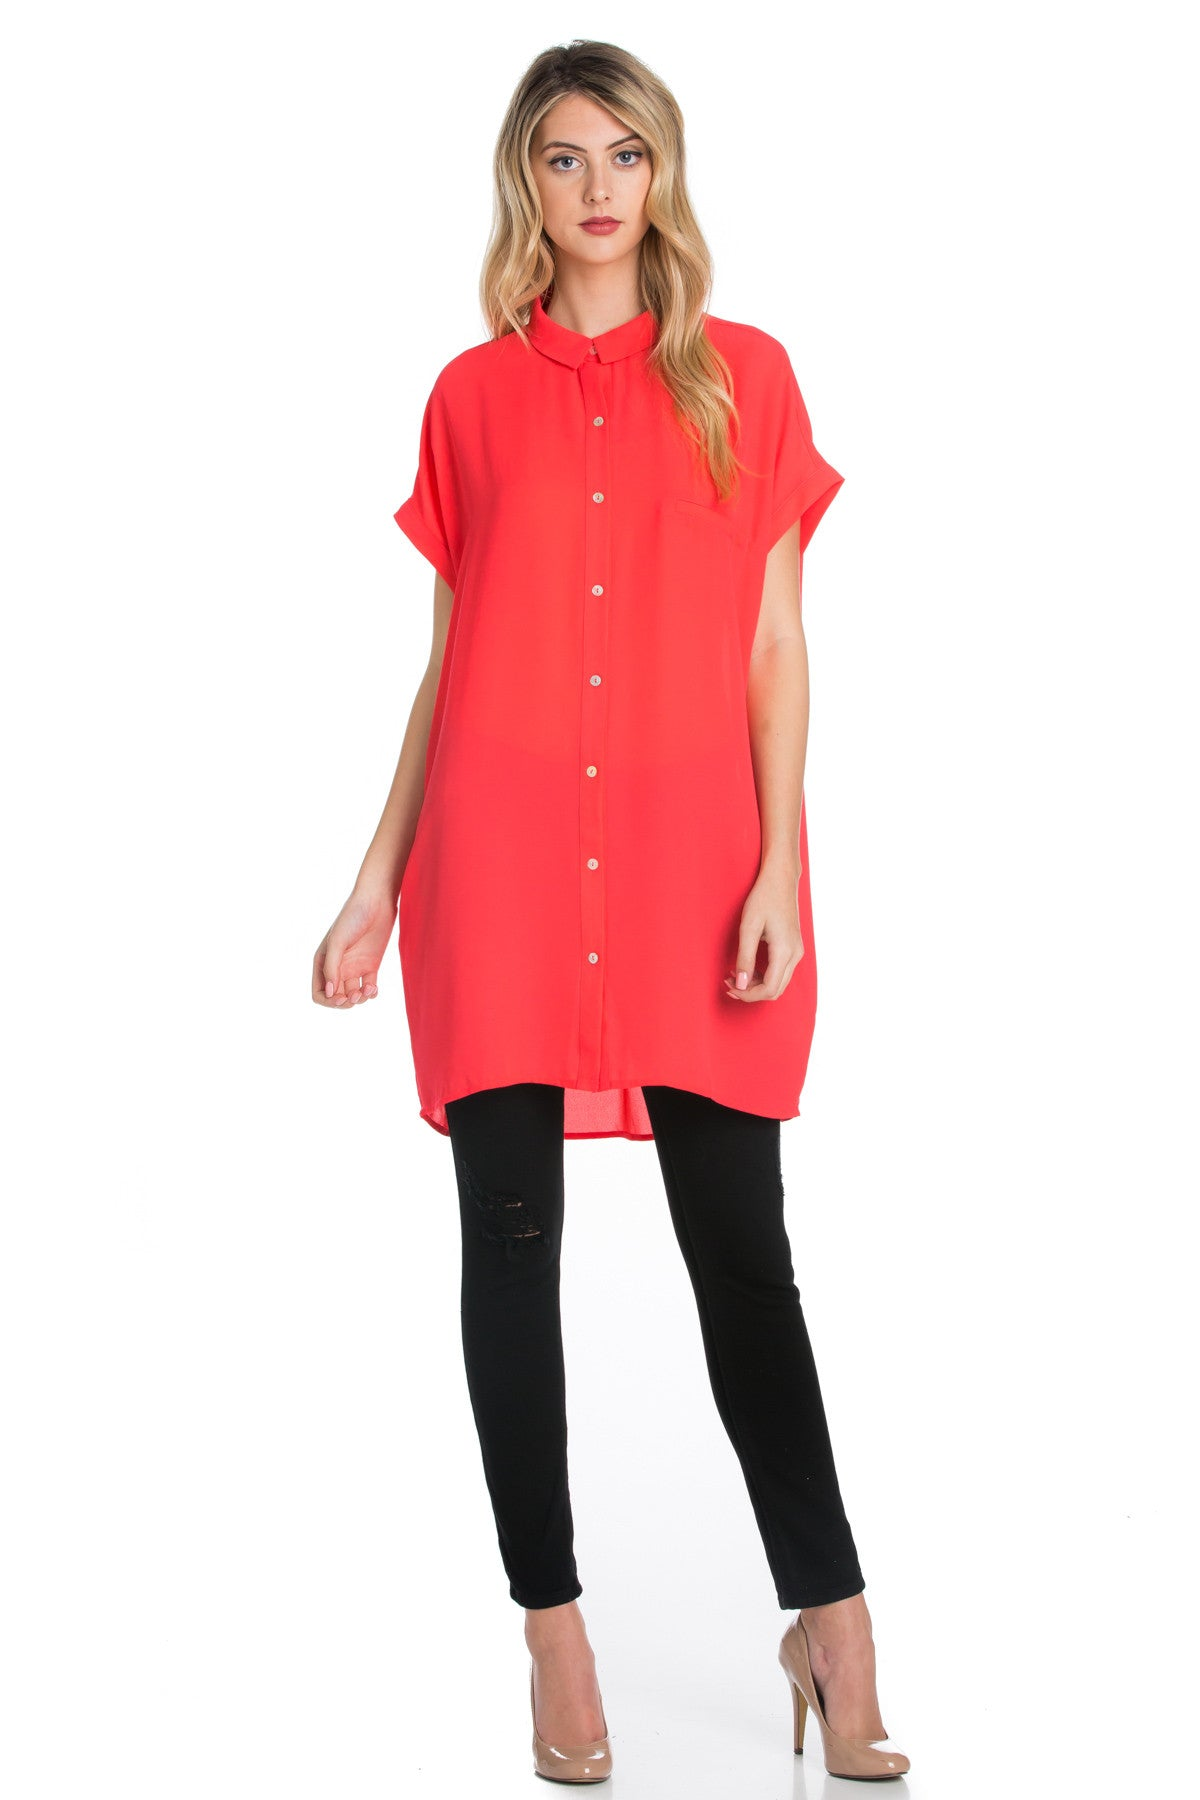 Short Sleeve Longline Button Down Chiffon Top in Peachy - Tops - My Yuccie - 6